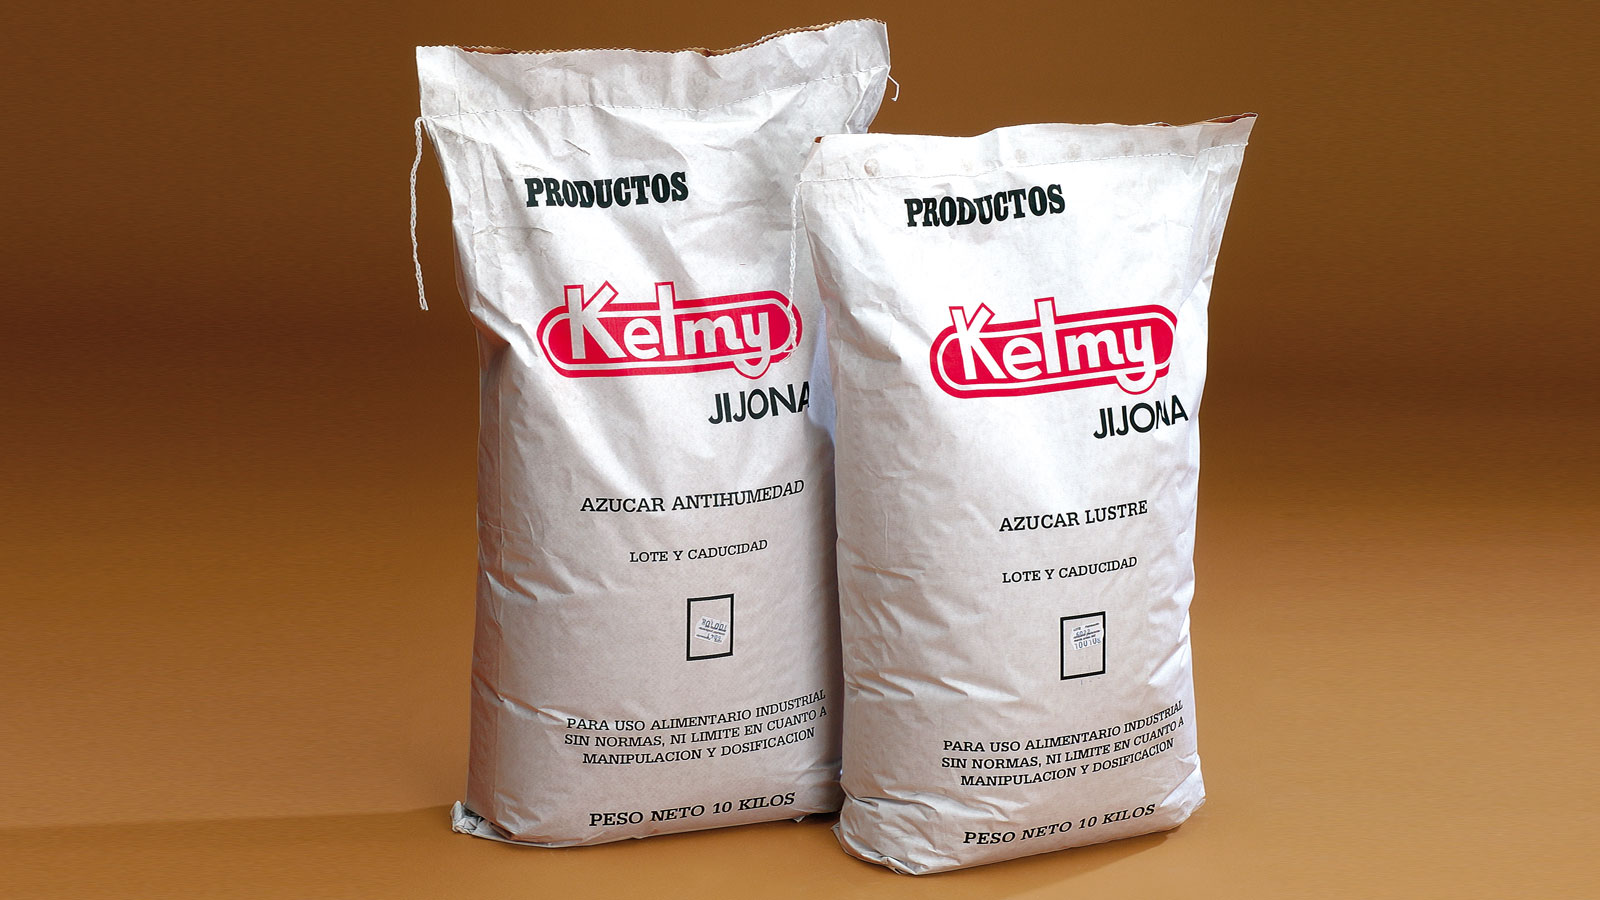 Finely ground sugar for use in confectionery